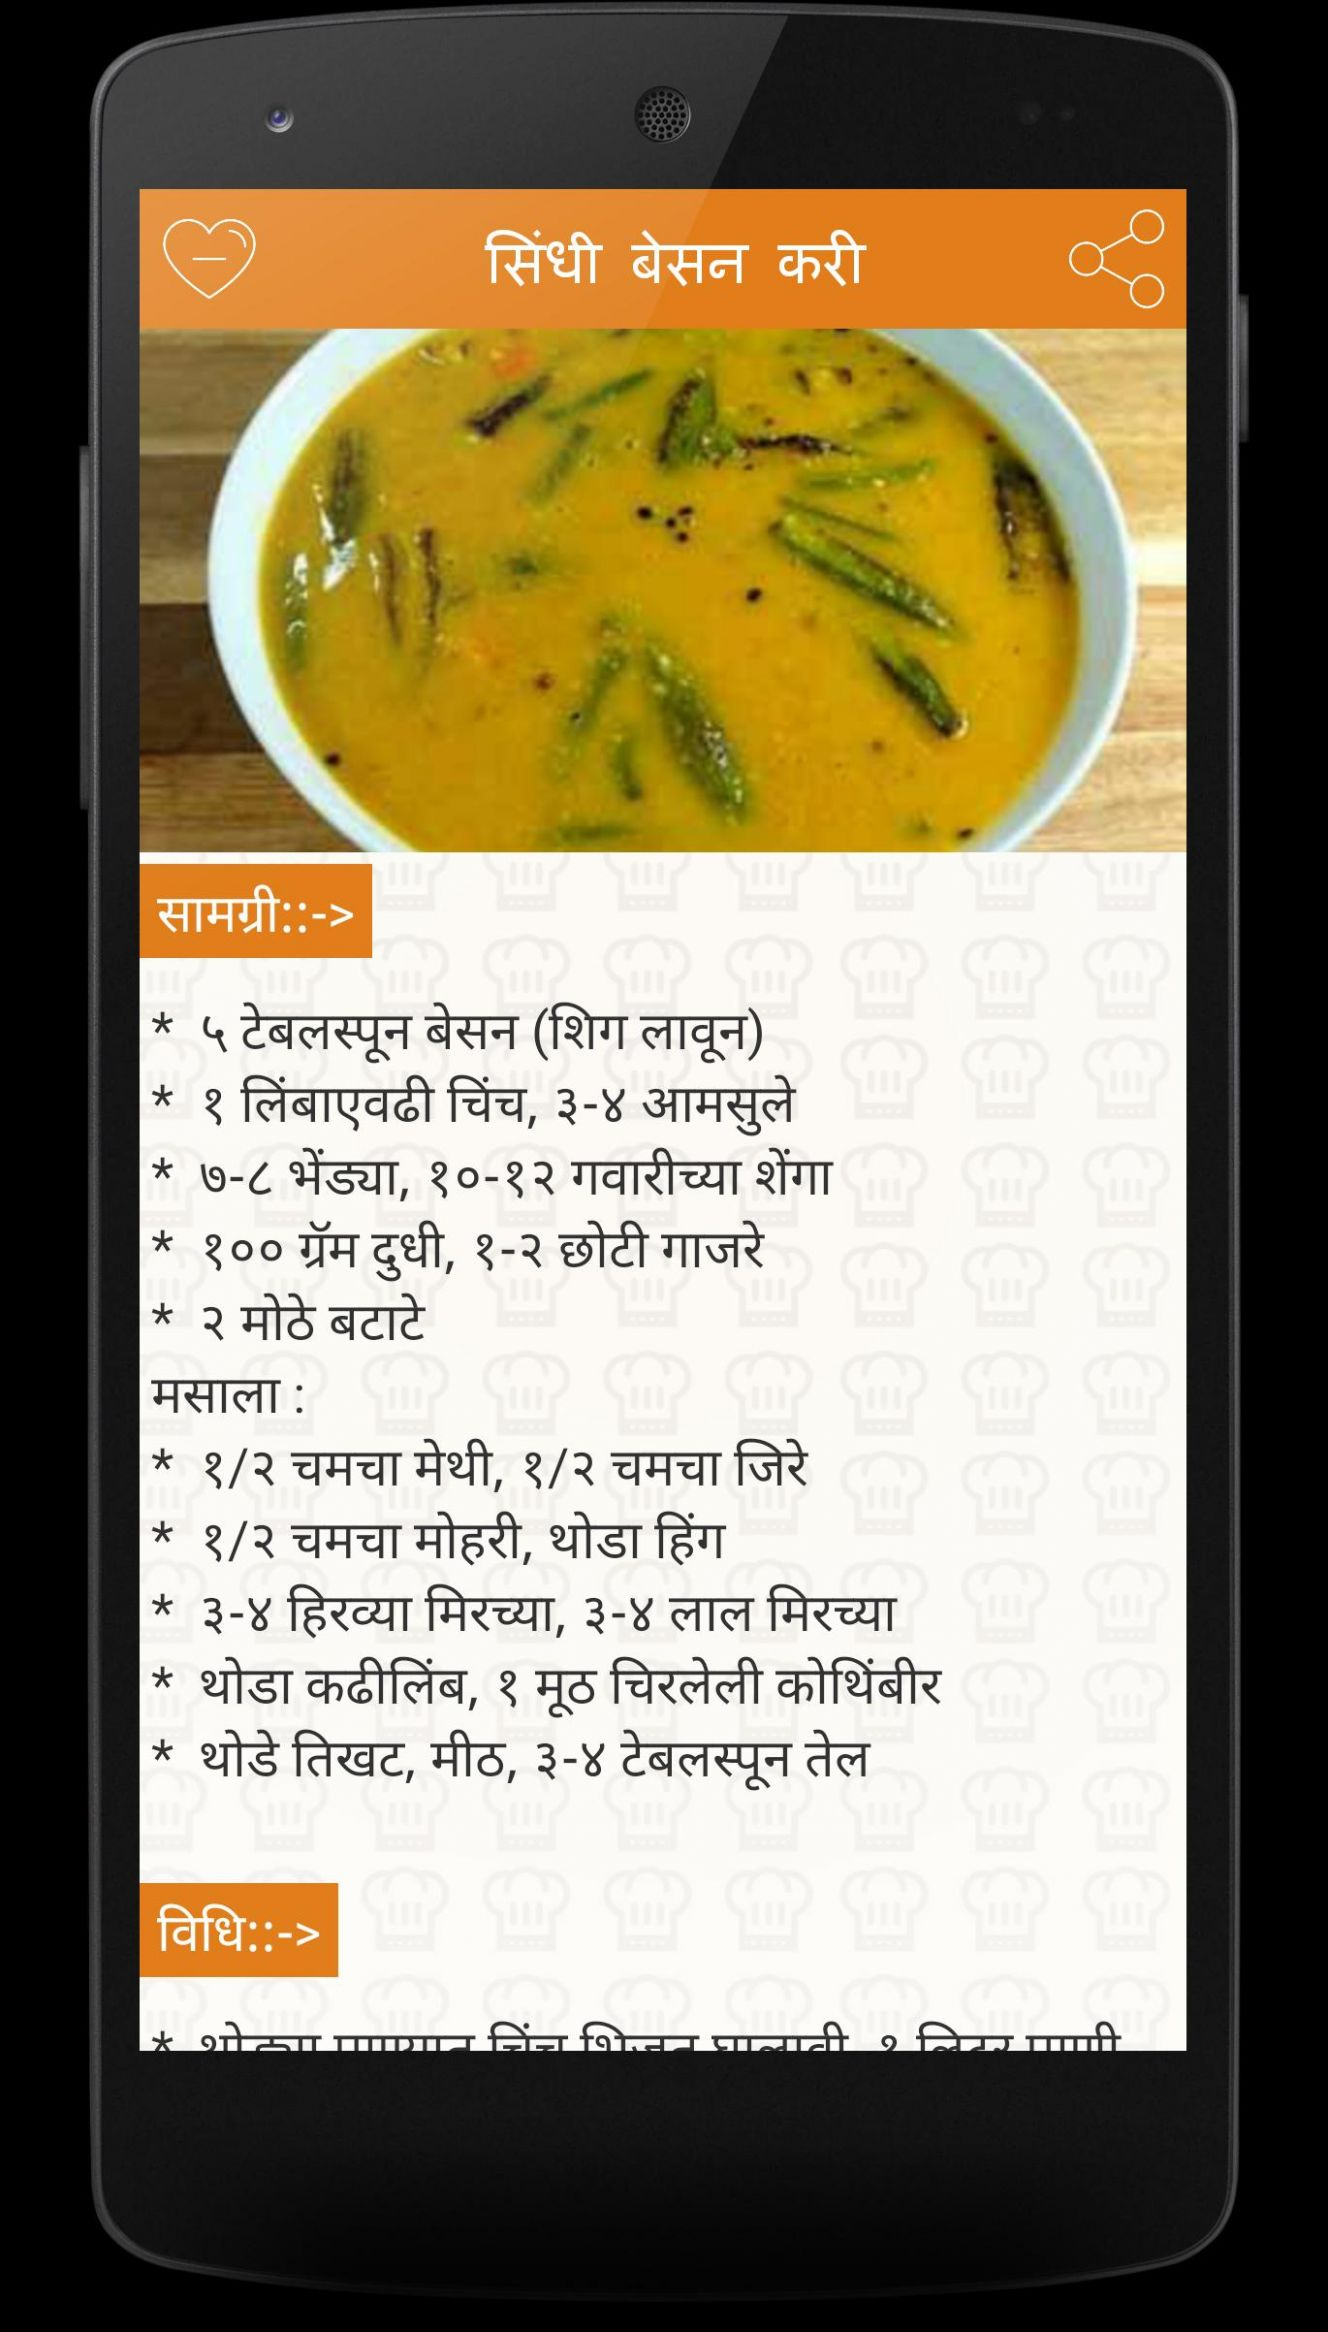 Kadhi, Soup Recipes in Marathi for Android - APK Download - Soup Recipes In Marathi